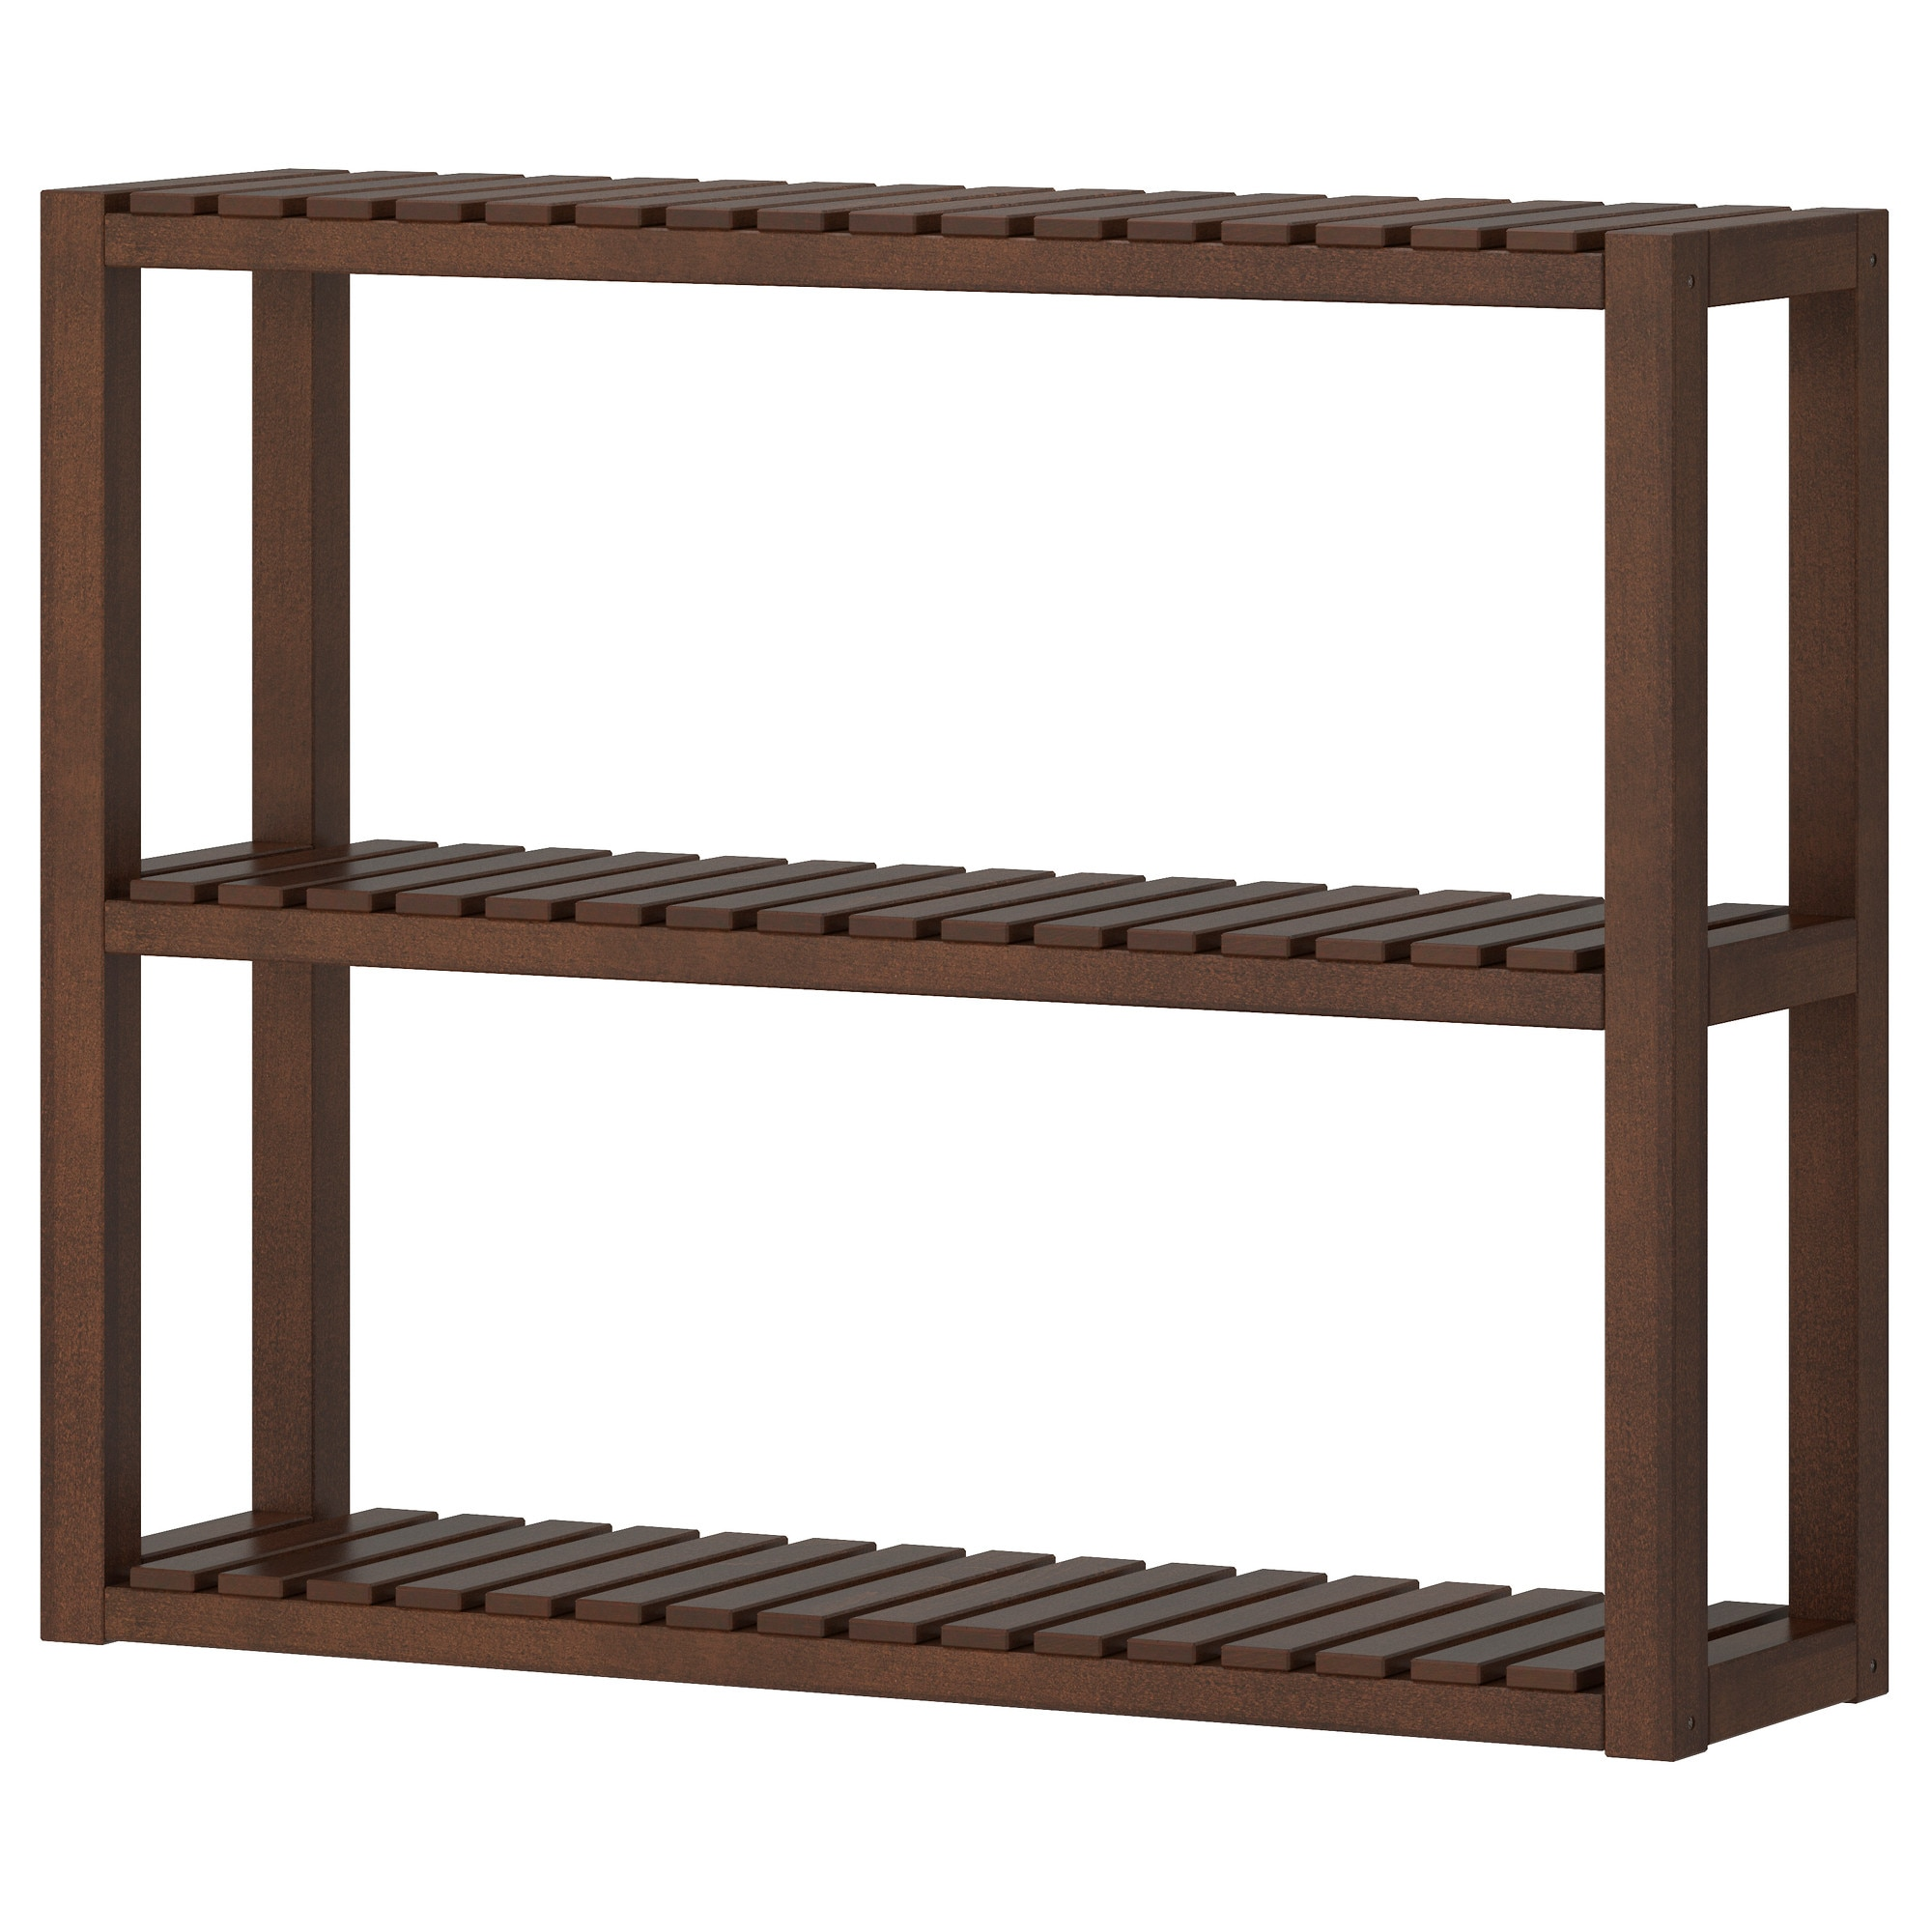 Bathroom Shelf Molger Wall Shelf Dark Brown Ikea